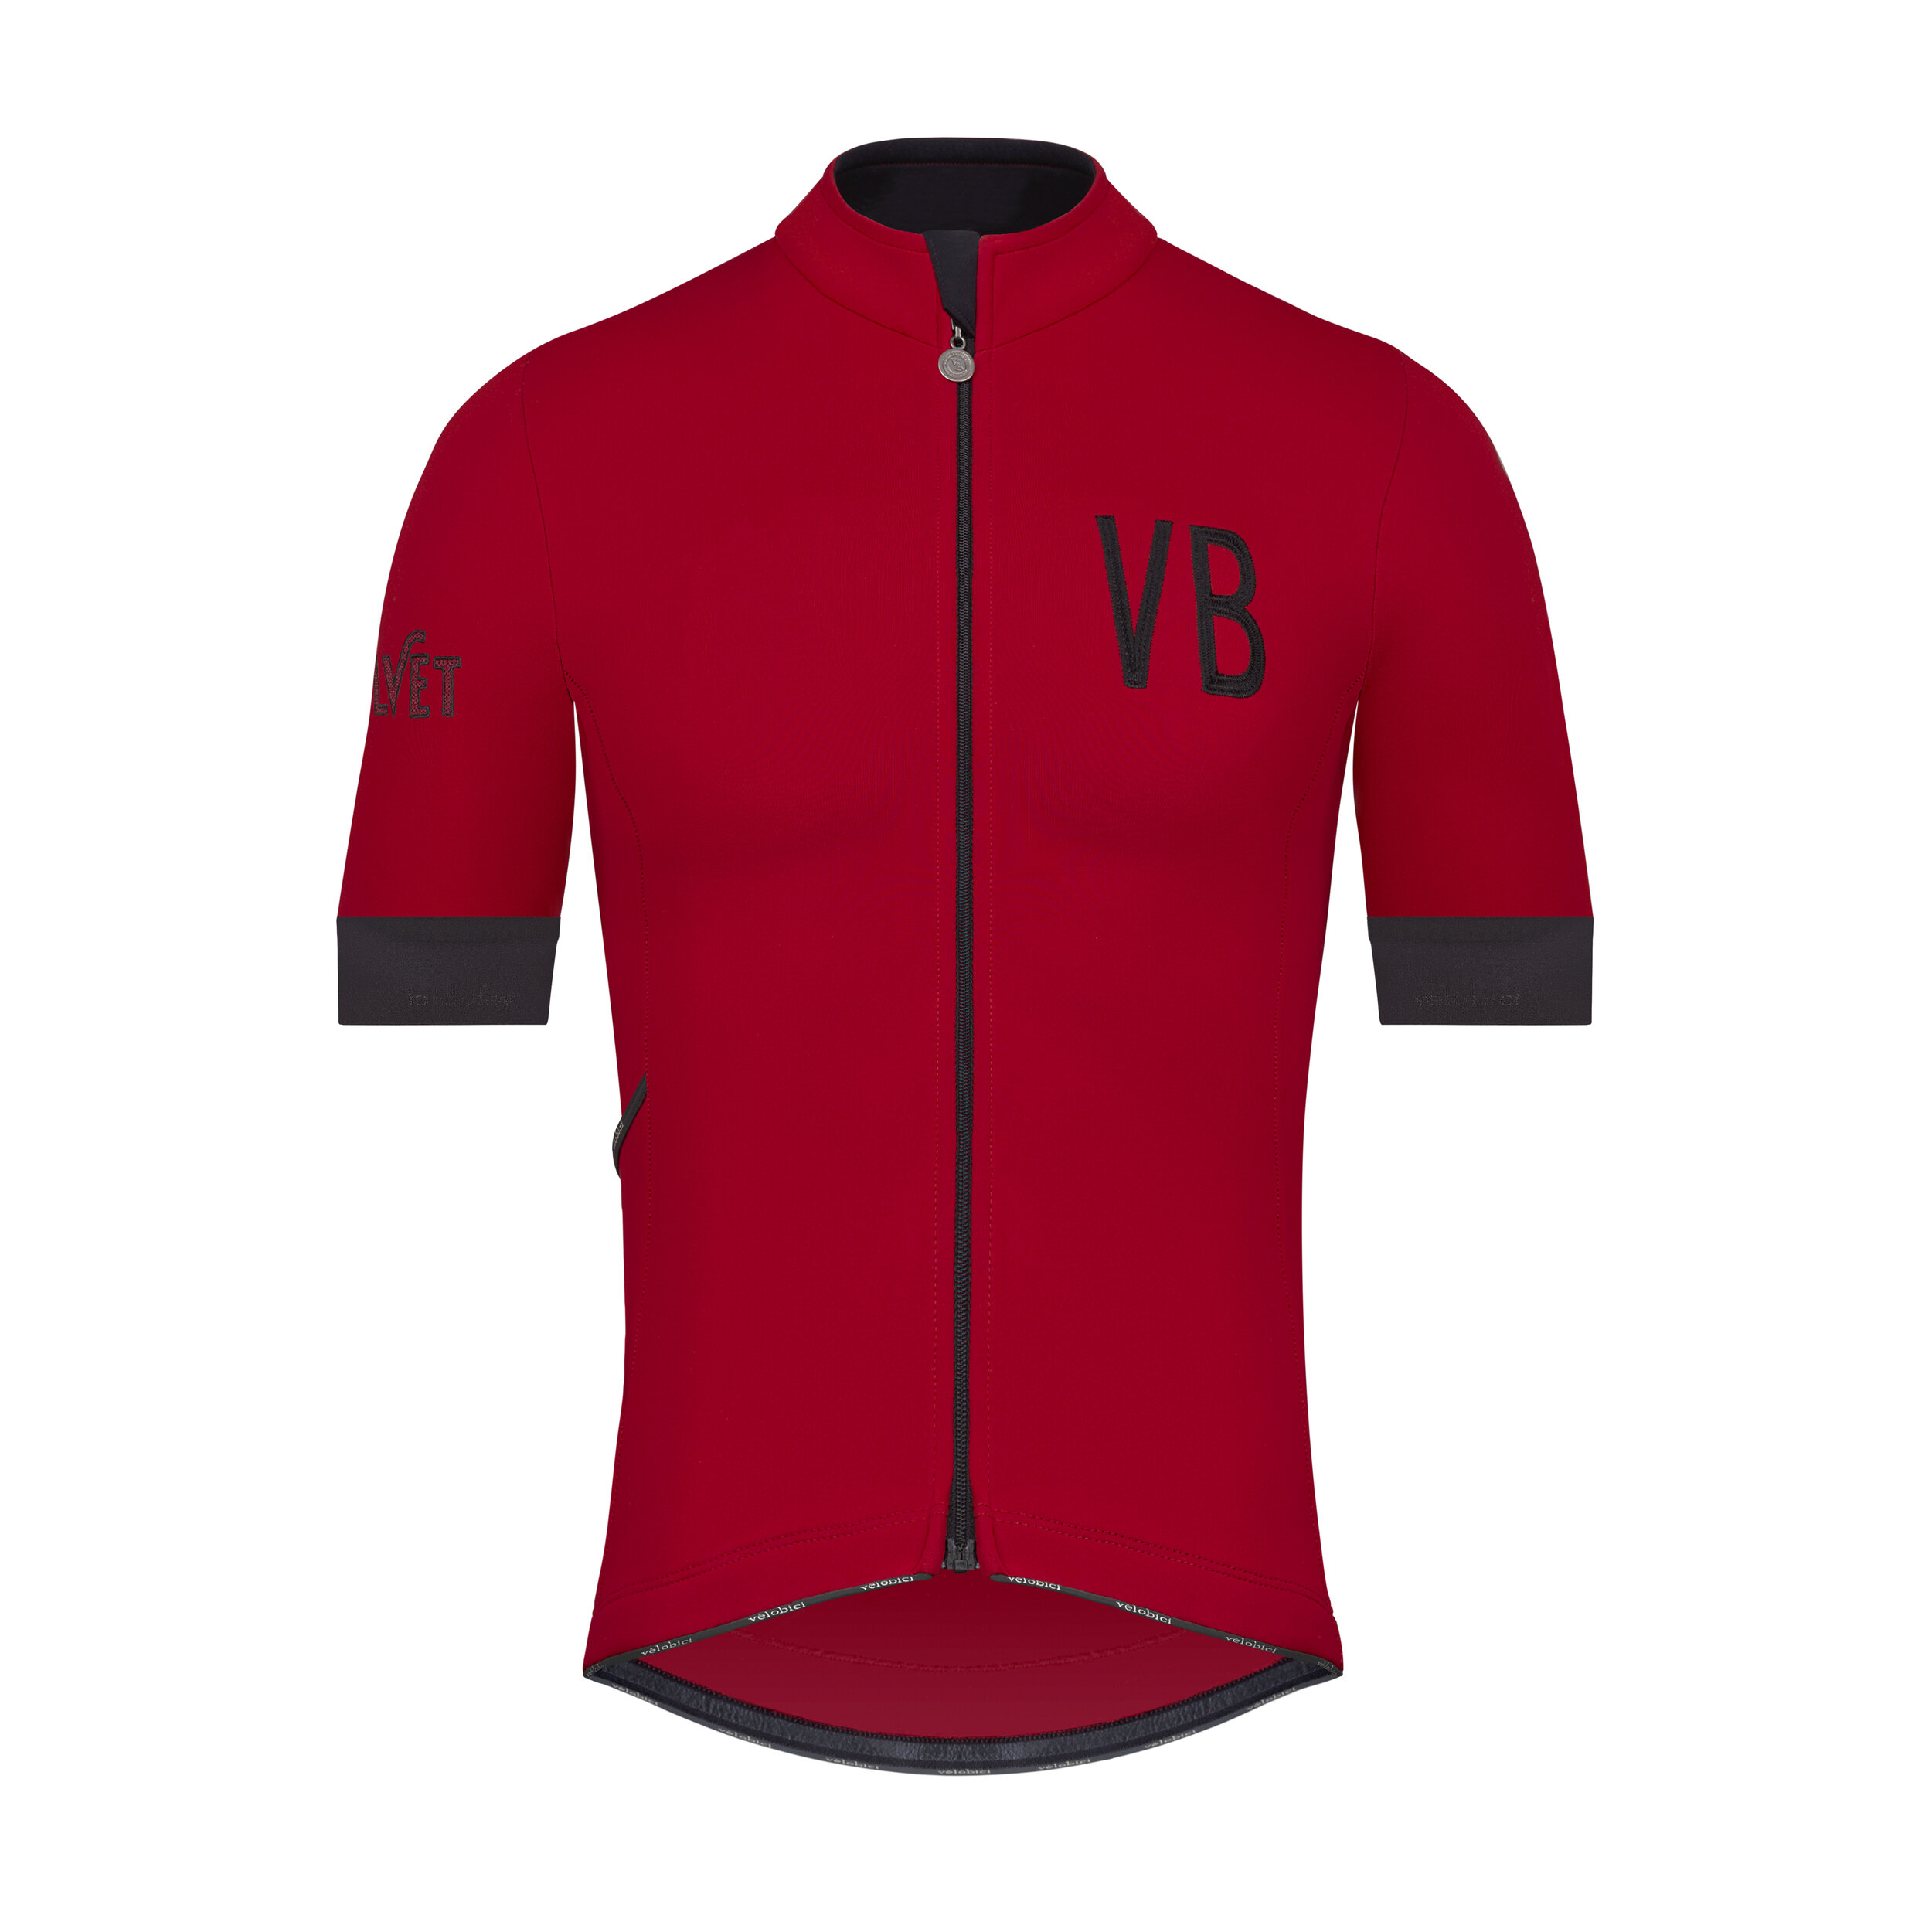 Velobici-Velvet-Red-Thermal-Short-Sleeve-Cycling-Jersey-Front.jpg